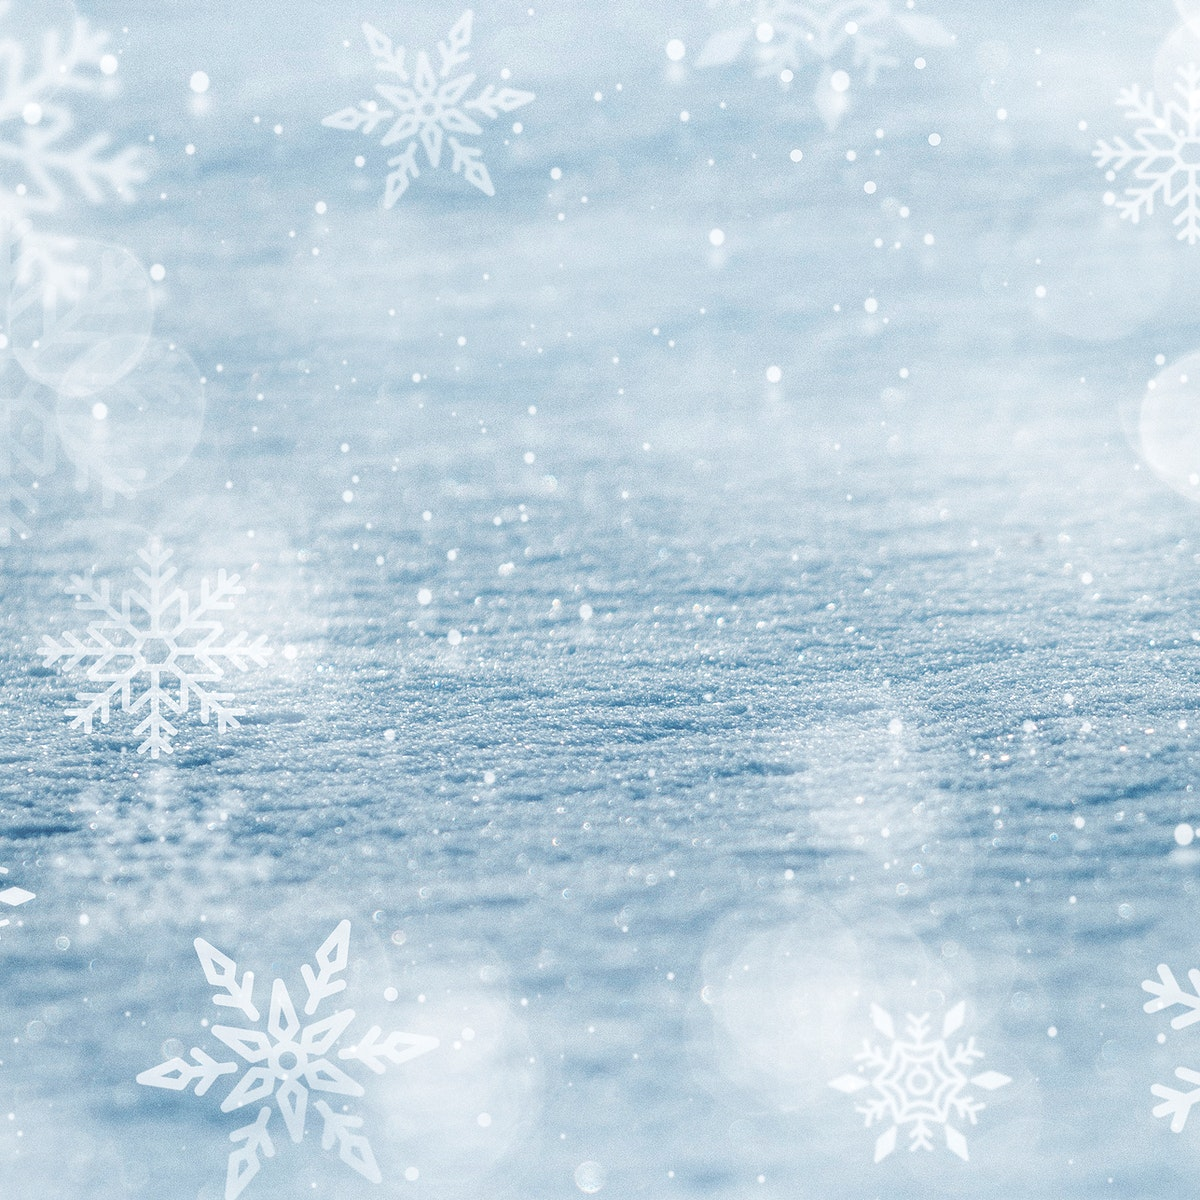 Snowflakes patterned on background